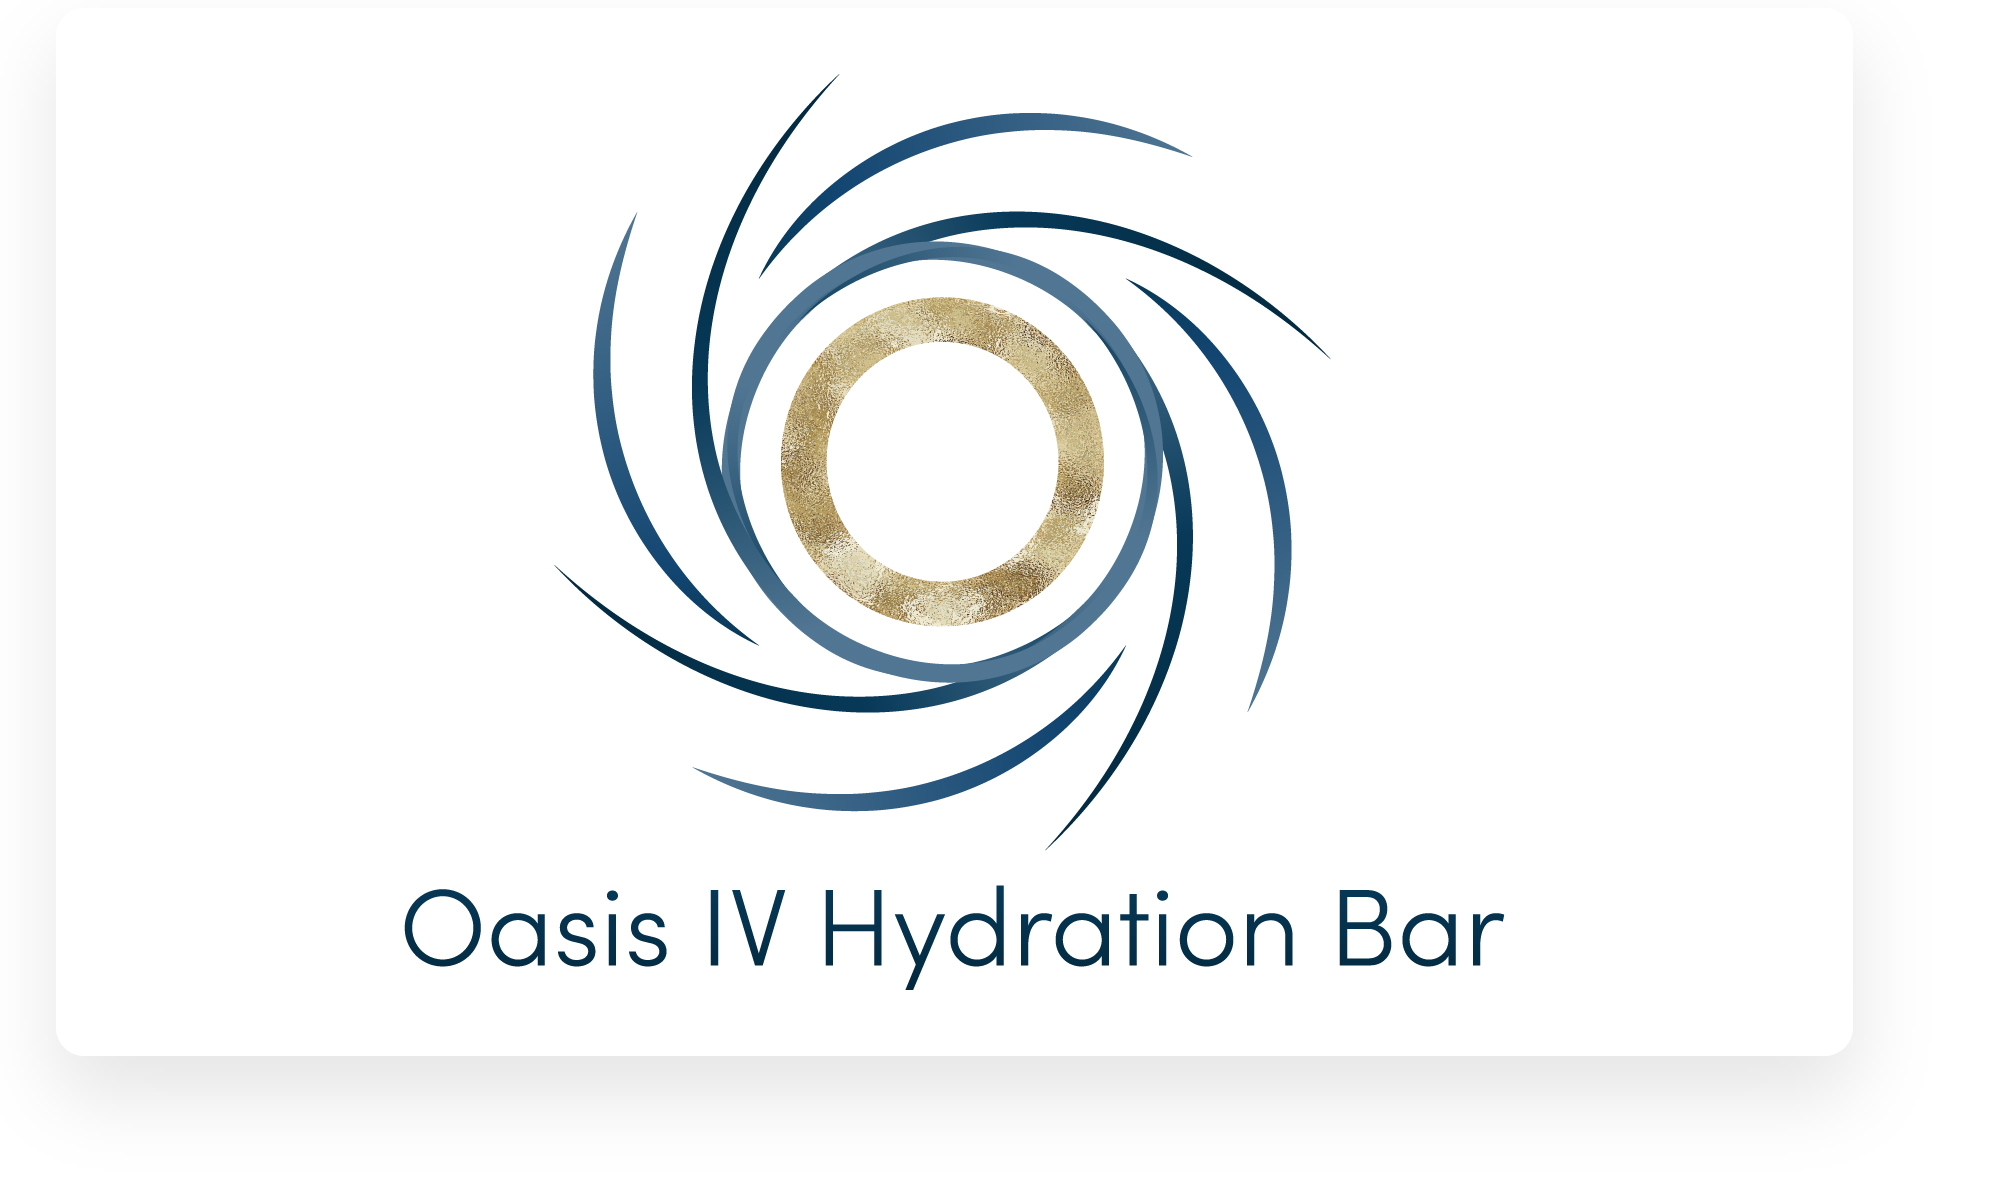 Oasis_IV_Hydration_Bar.jpg